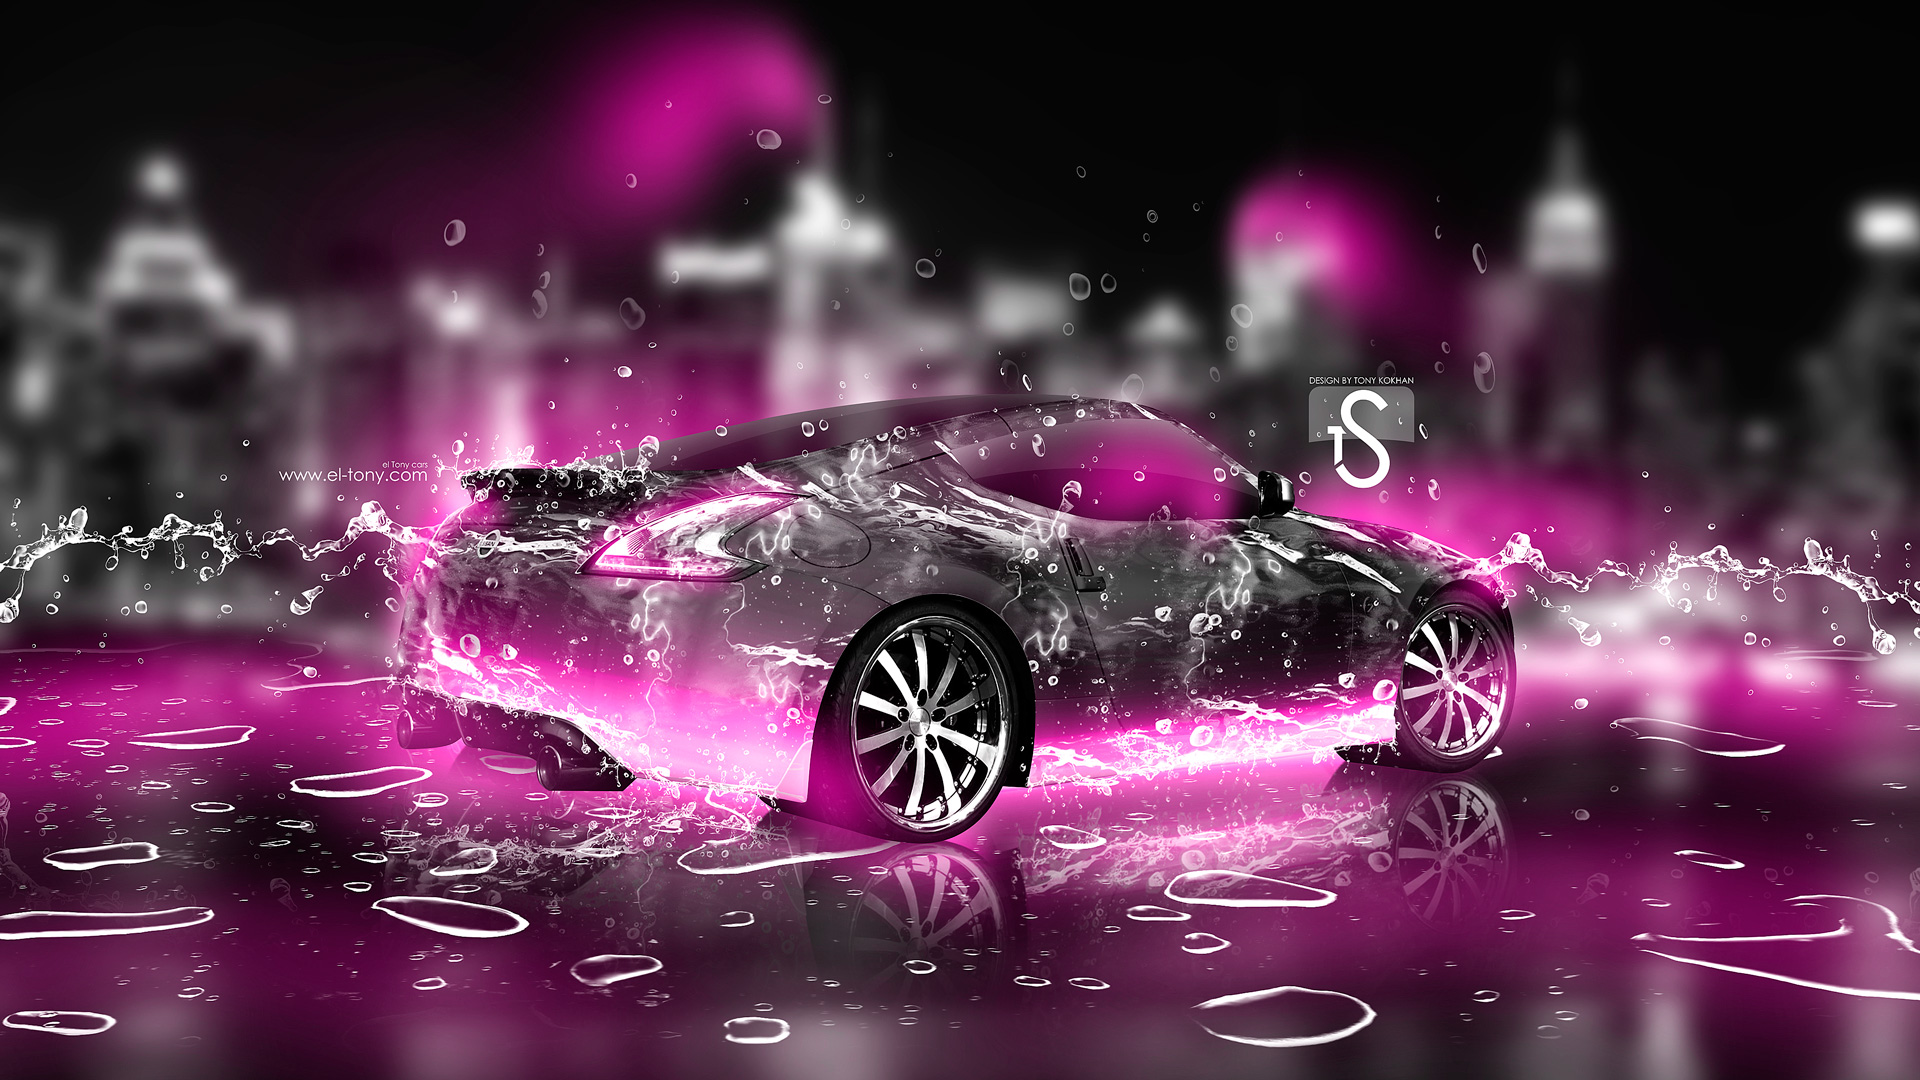 Neon Pink Wallpapers  water city car 2013 pink 1920x1080